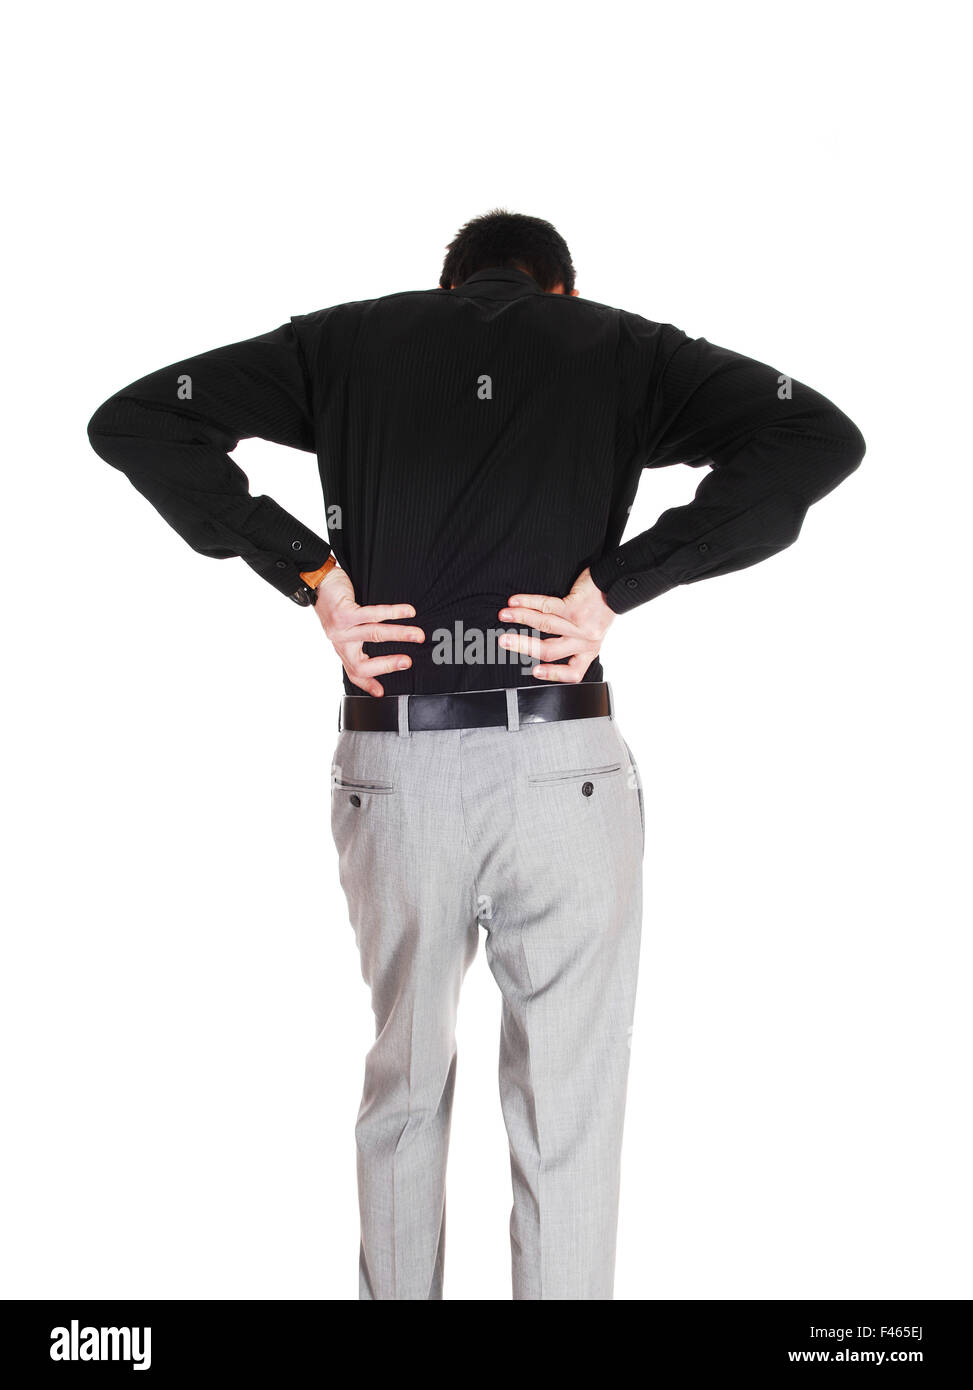 Man with heavy back pain. - Stock Image